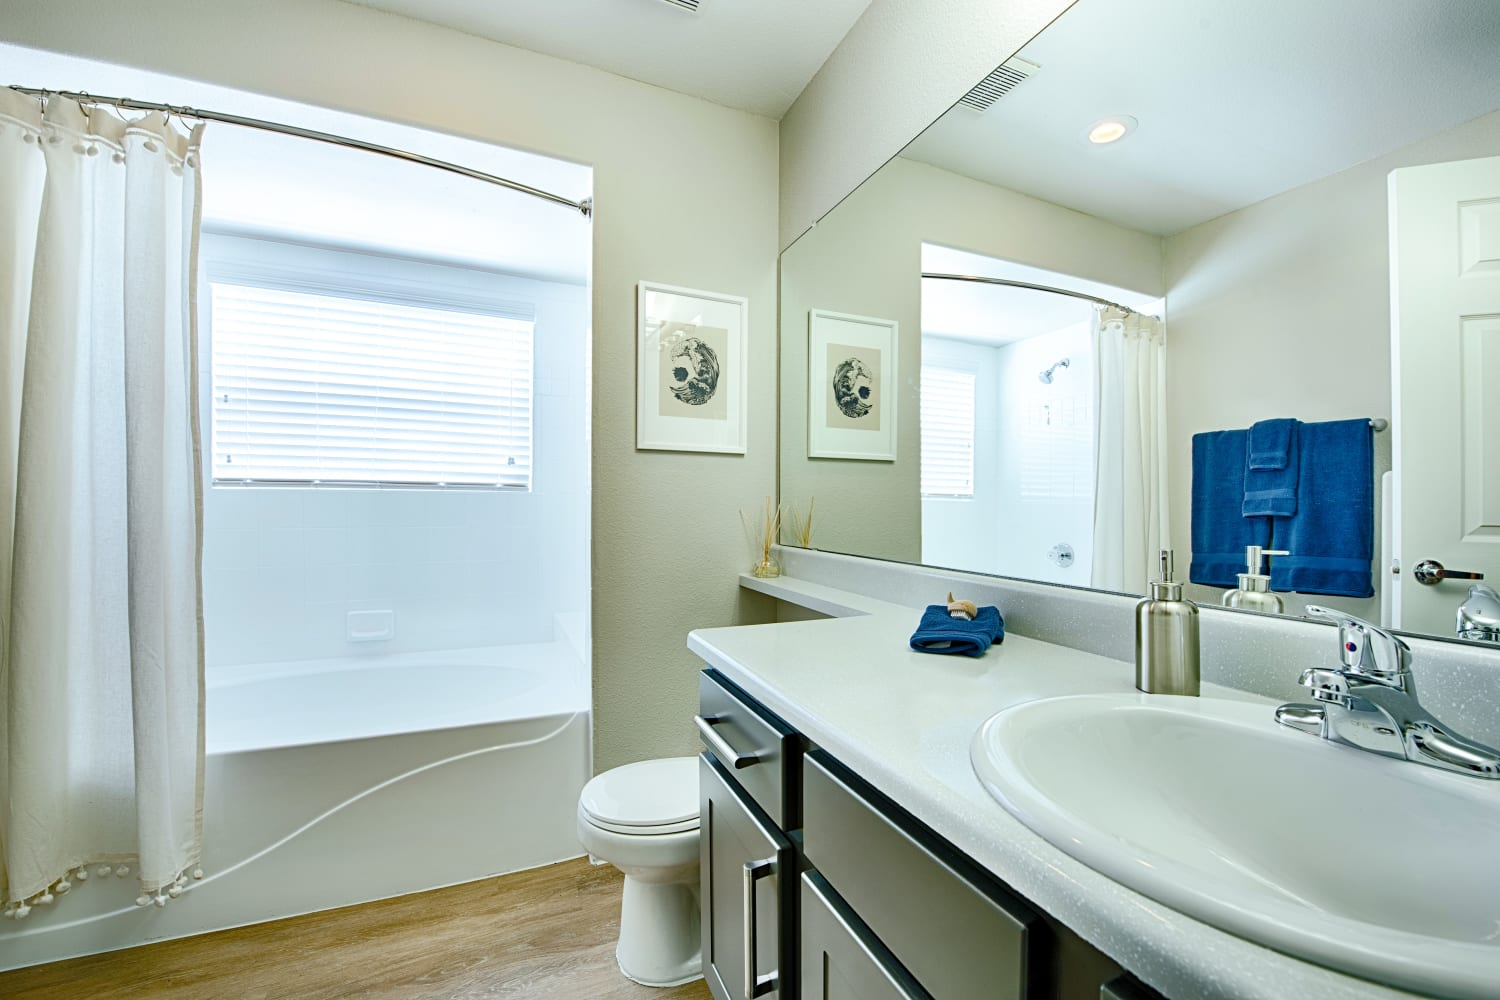 Enjoy bright and open bathrooms at Sonoran Vista Apartments in Scottsdale, Arizona